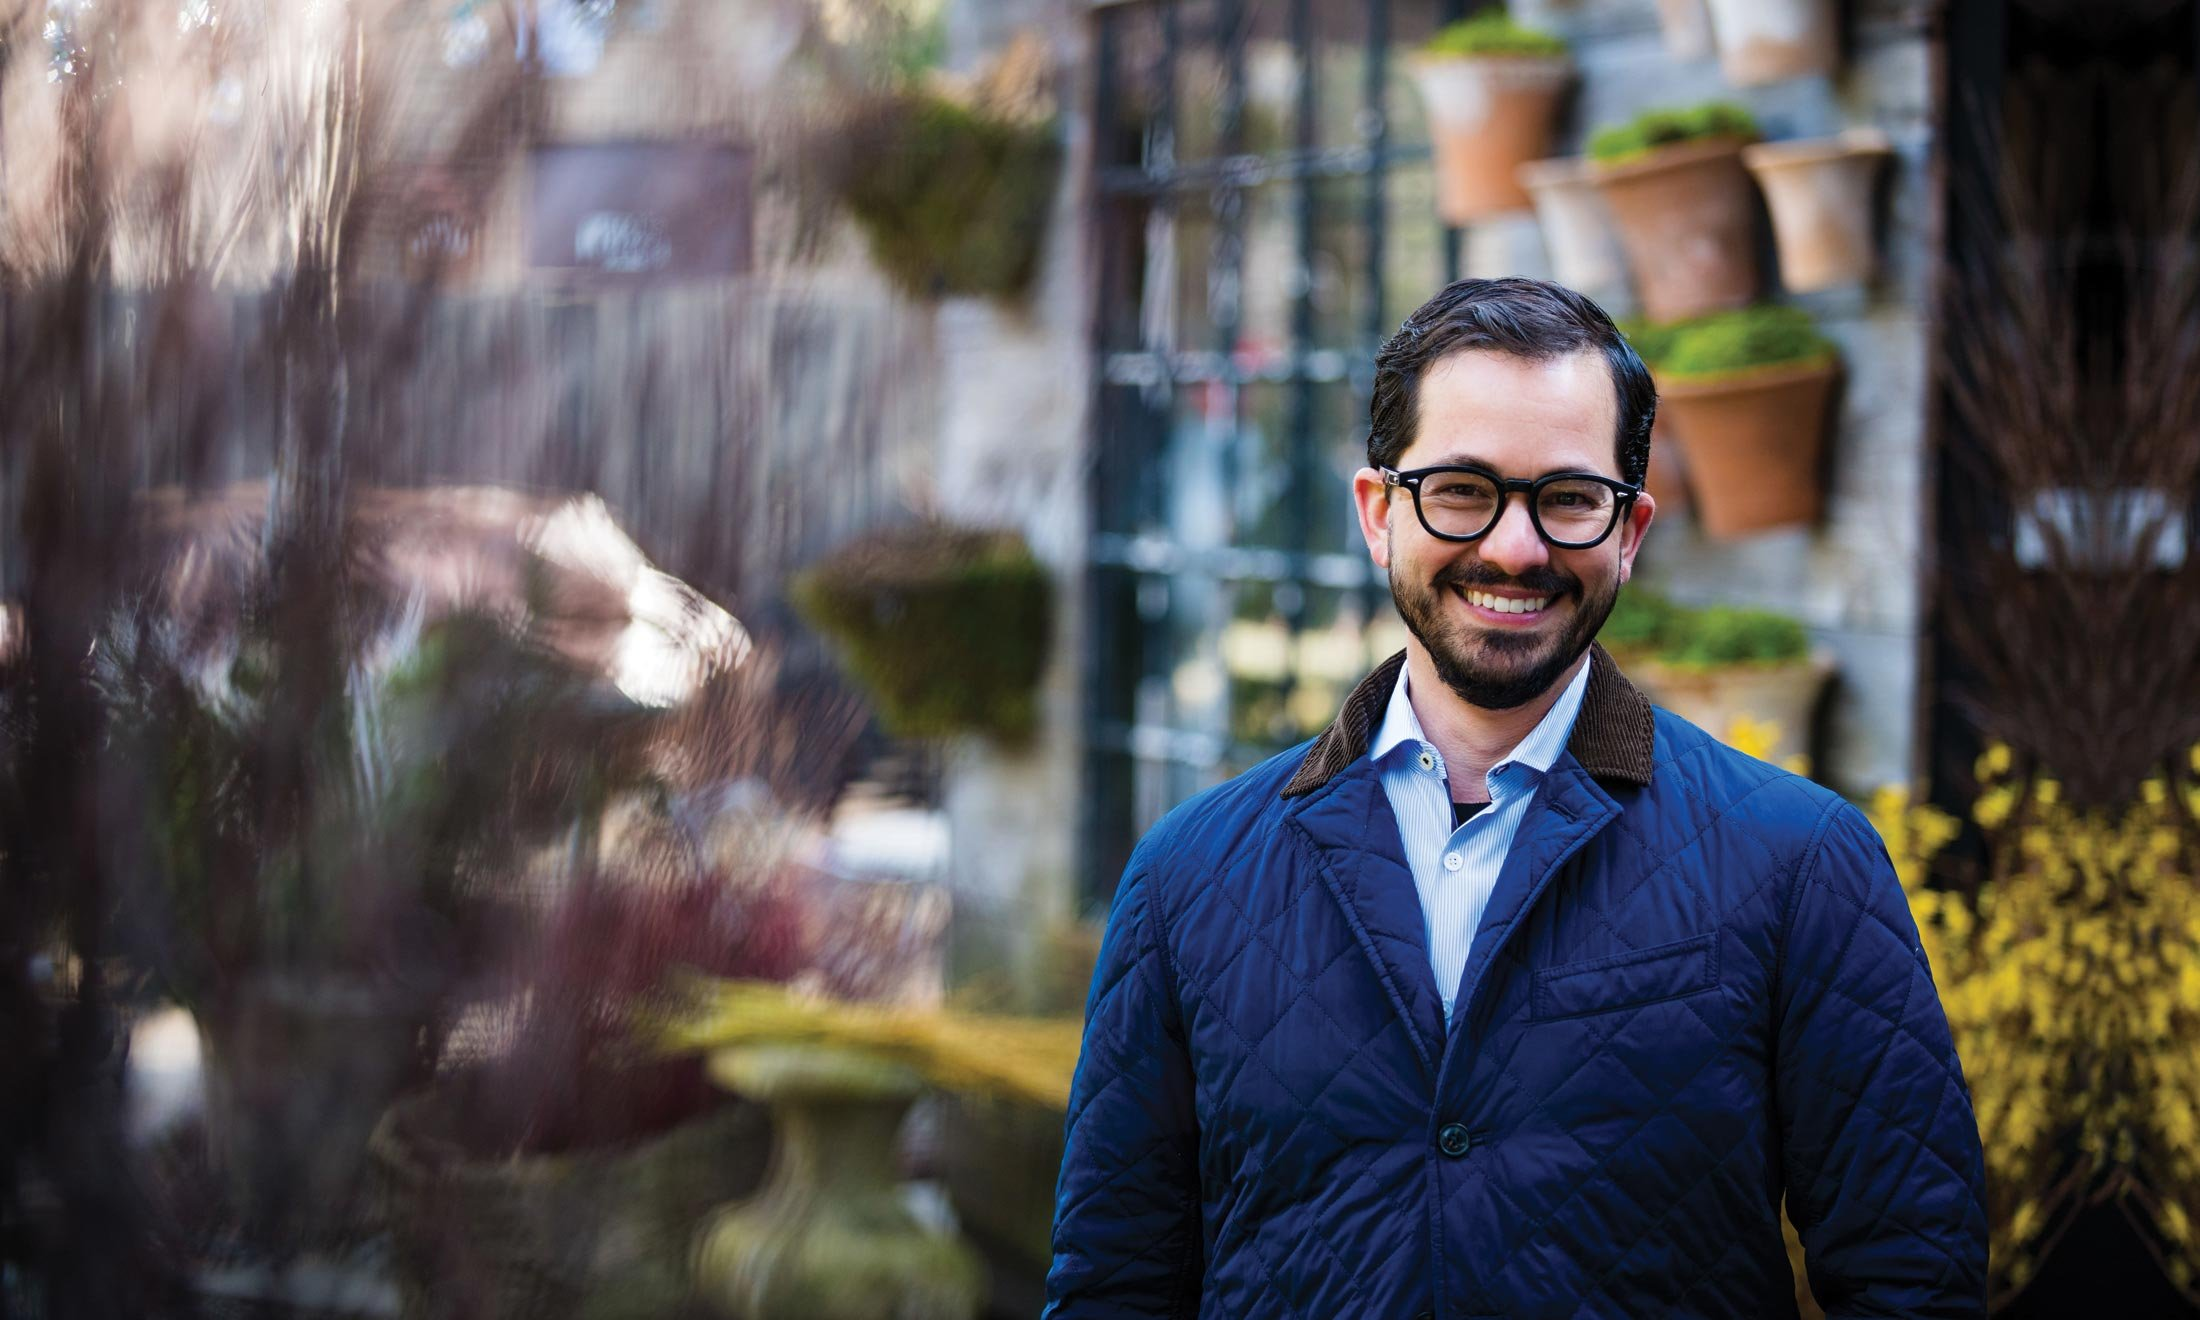 Phillip Morici outside at the fleurdetroit design campus - Plants in the background